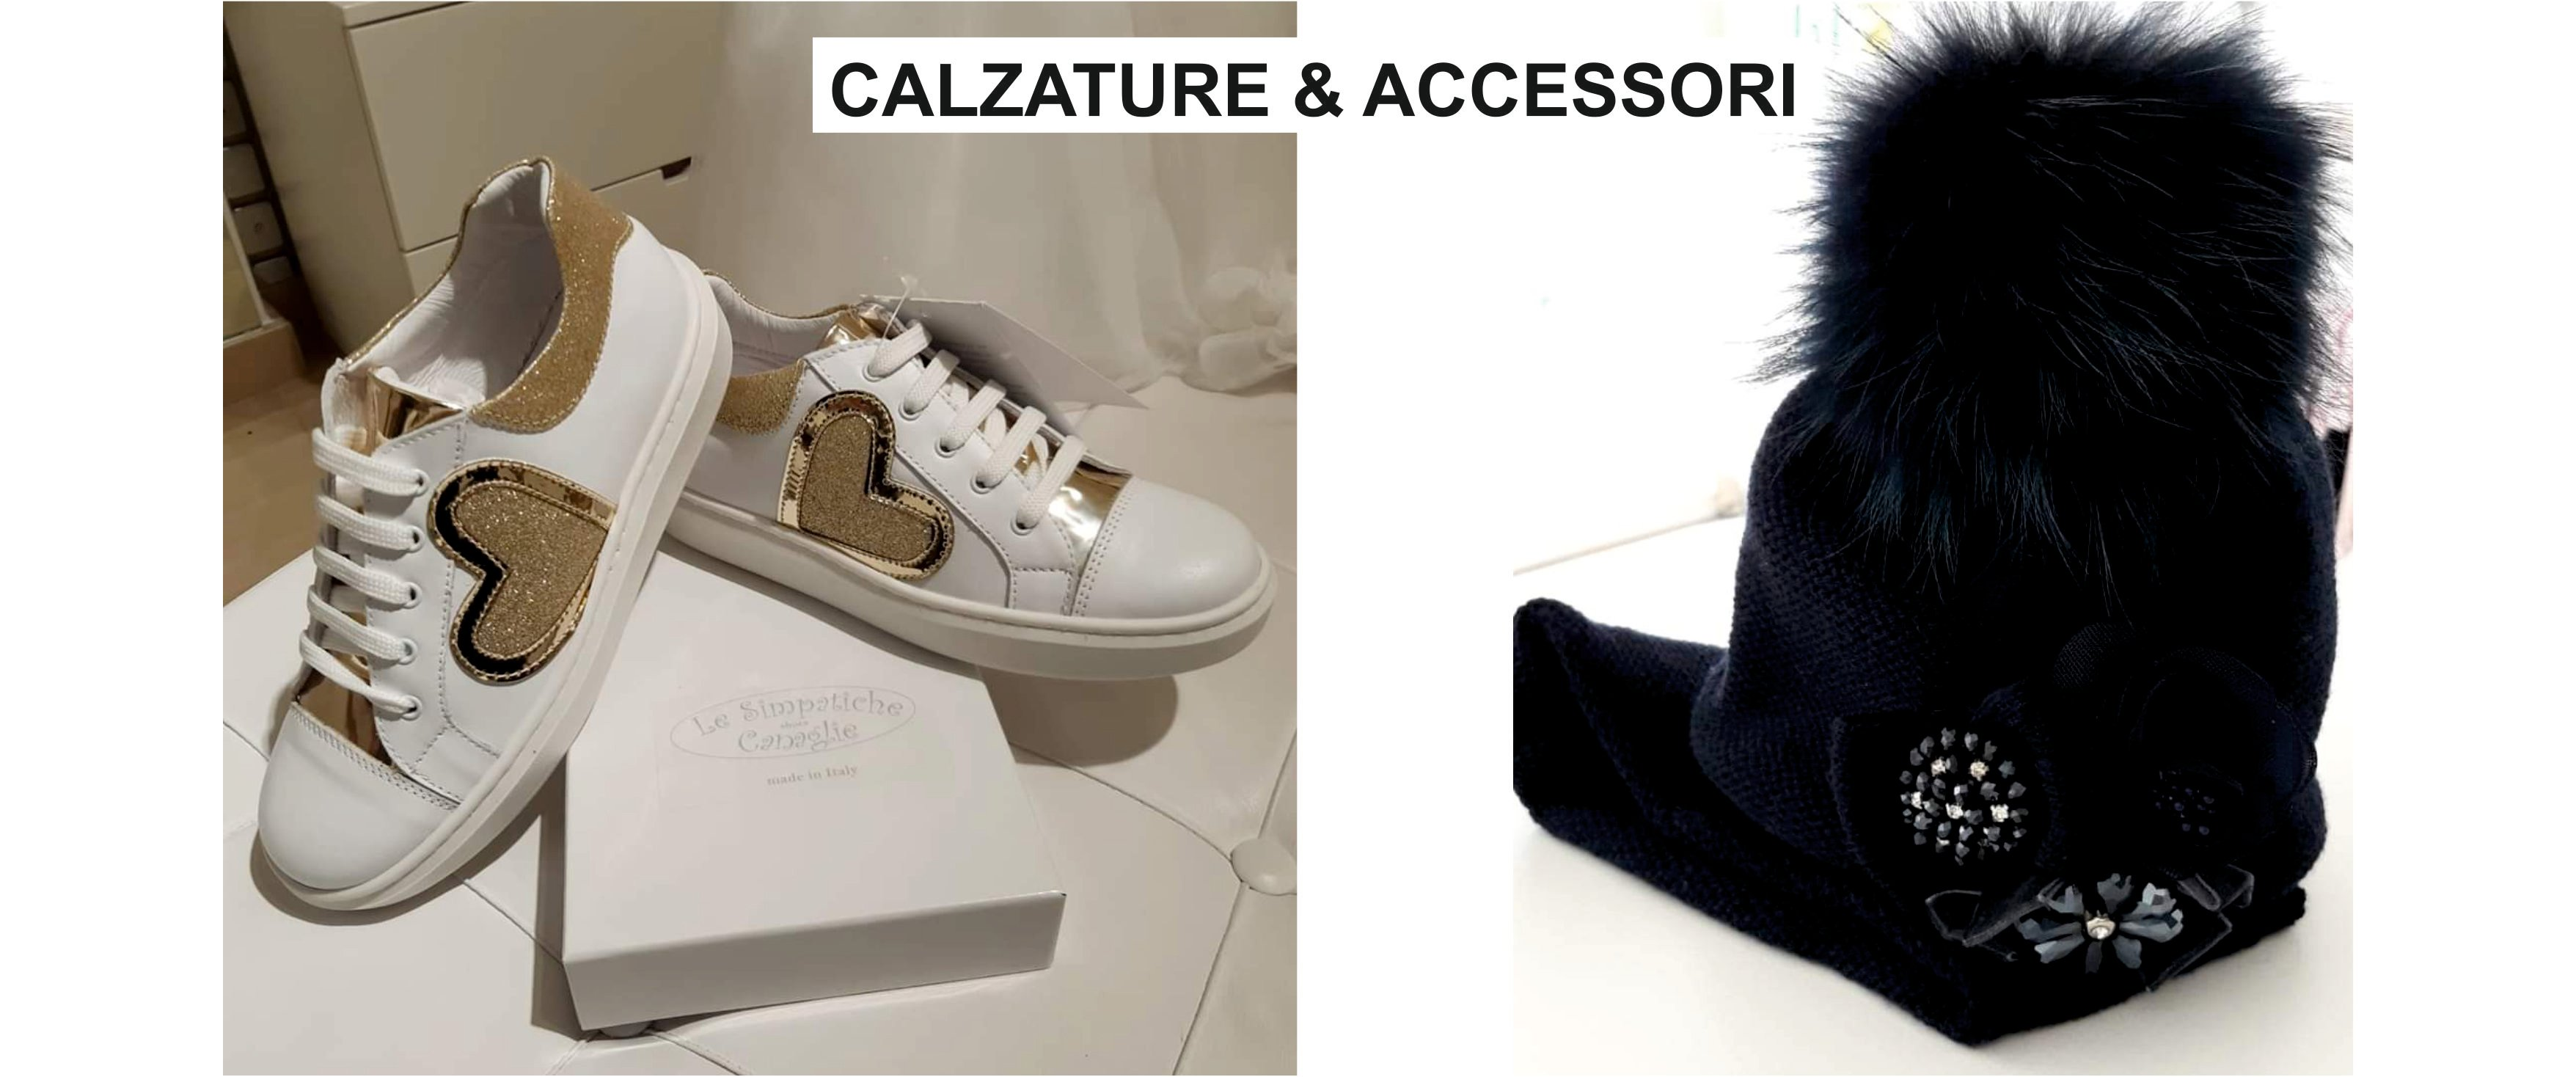 home - slider - calzature e accessori